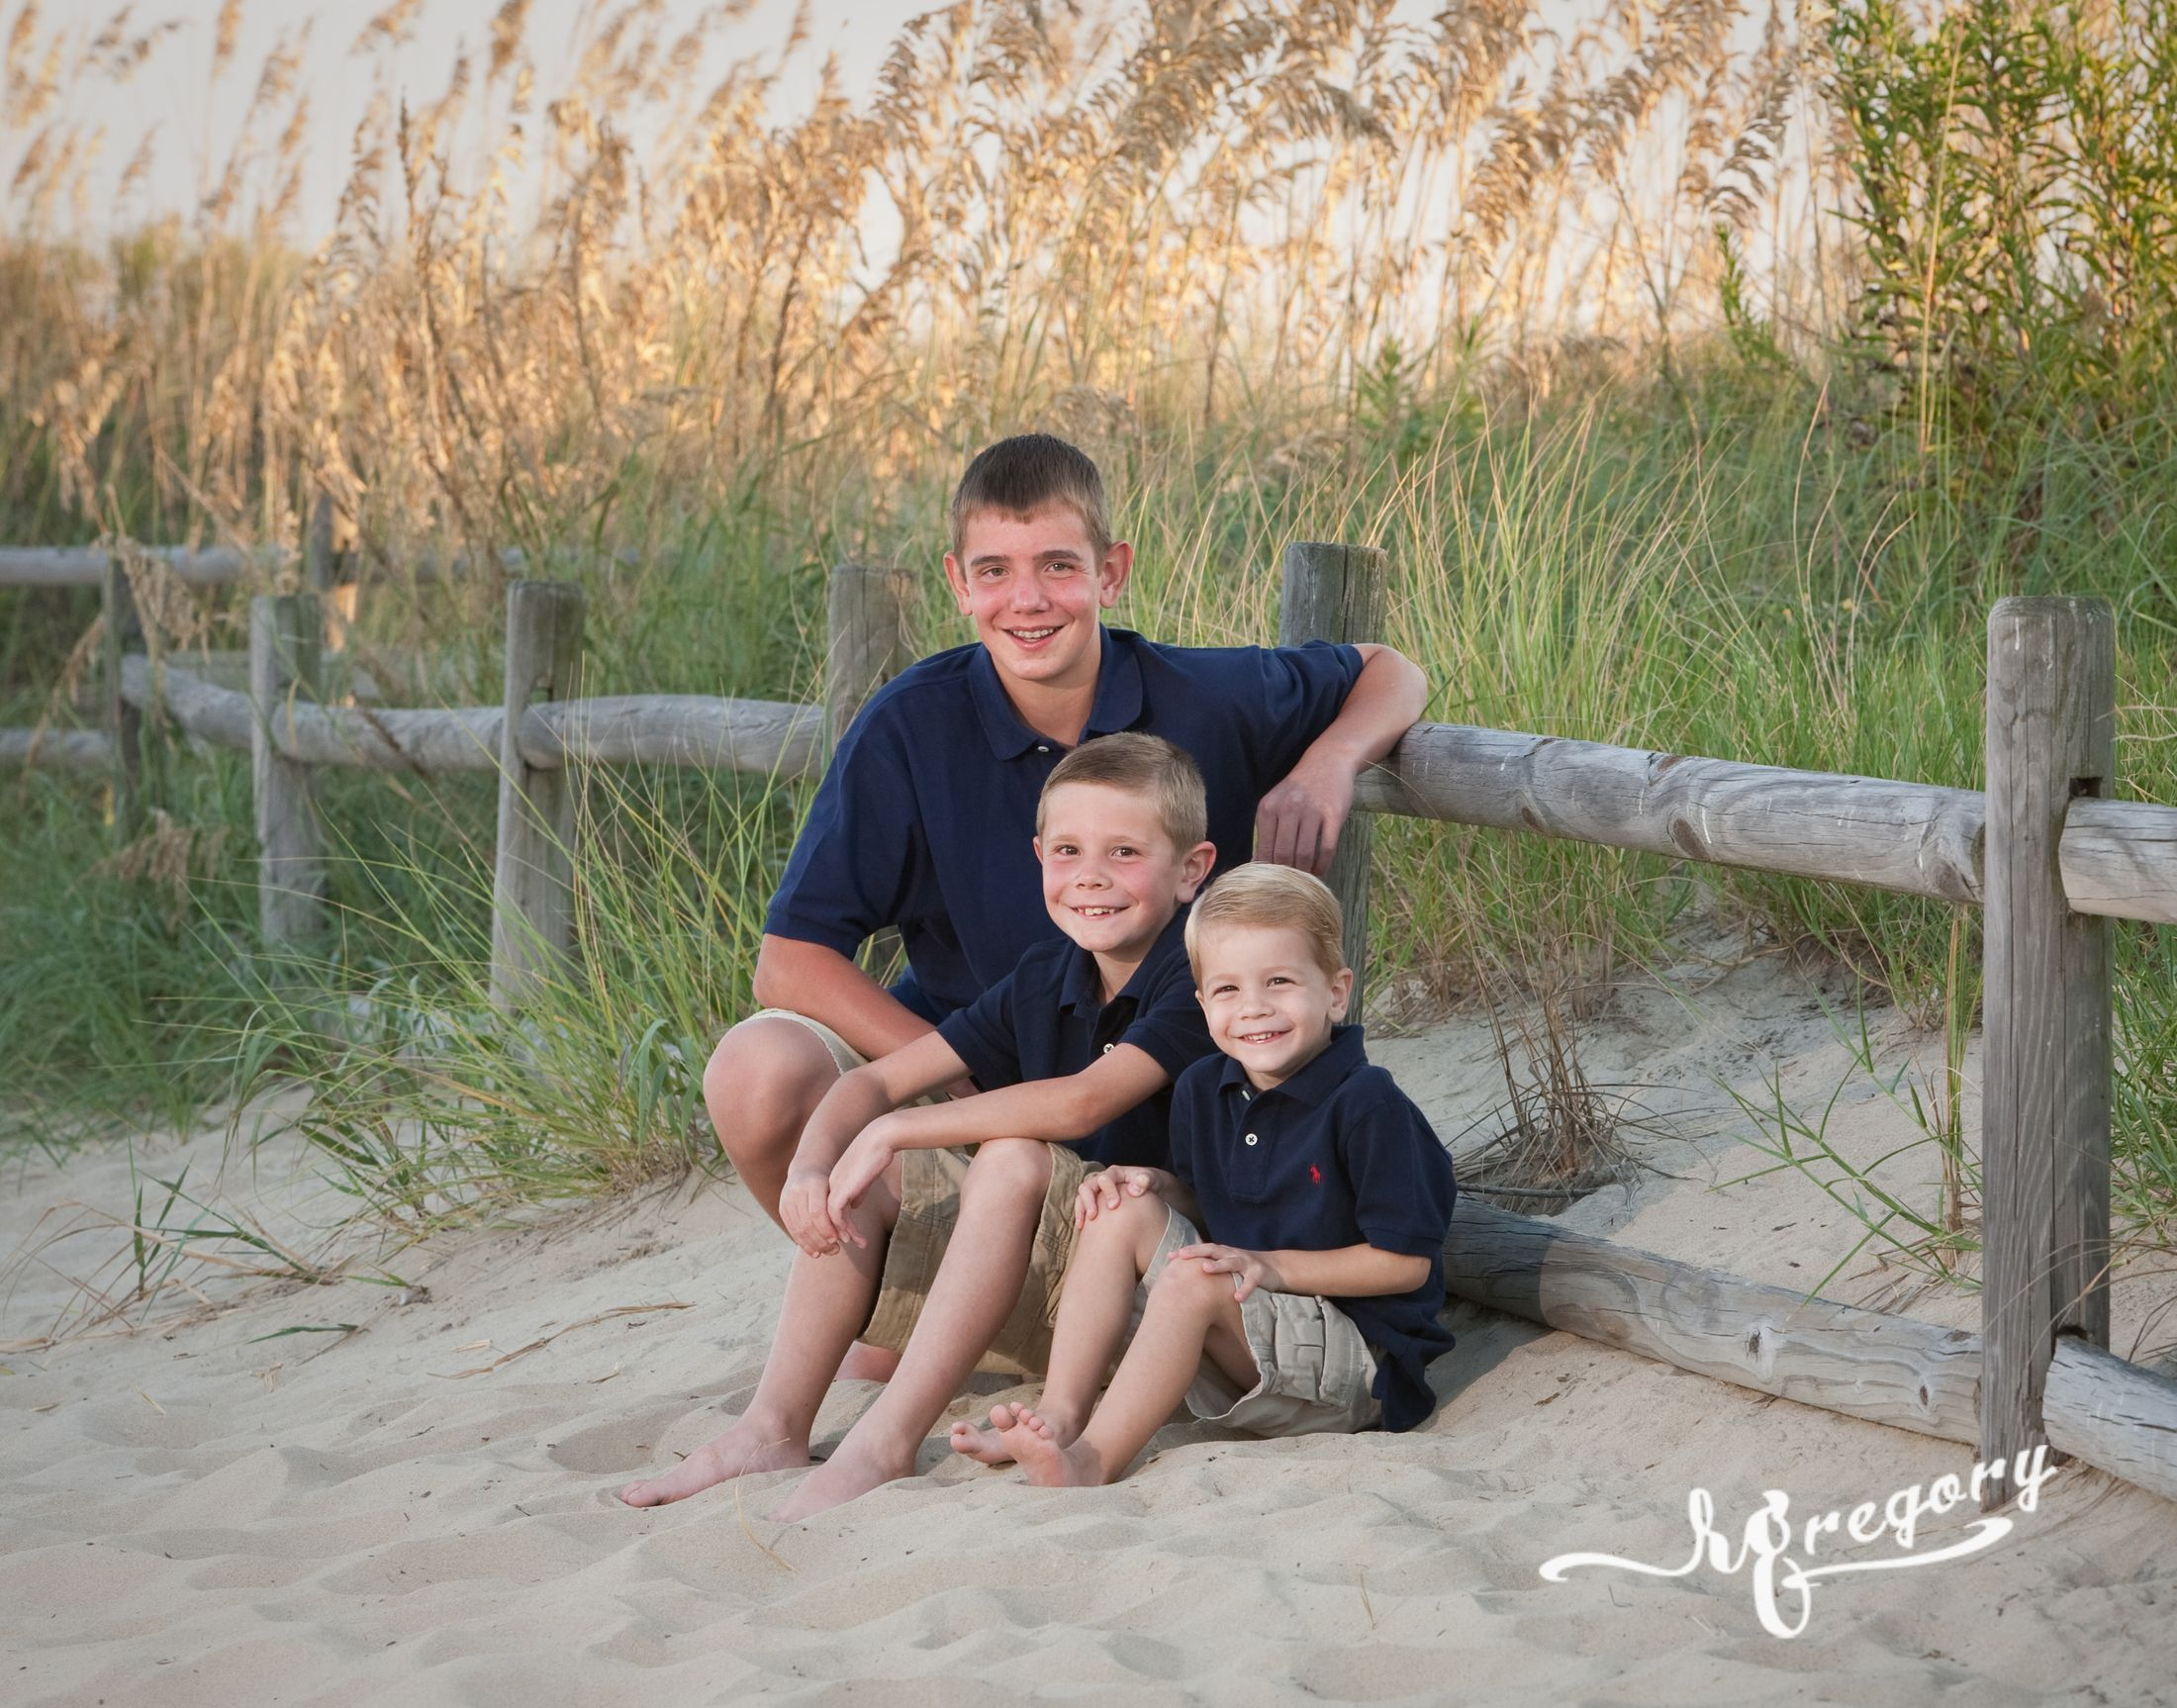 Snell professional child photography in virginia beach